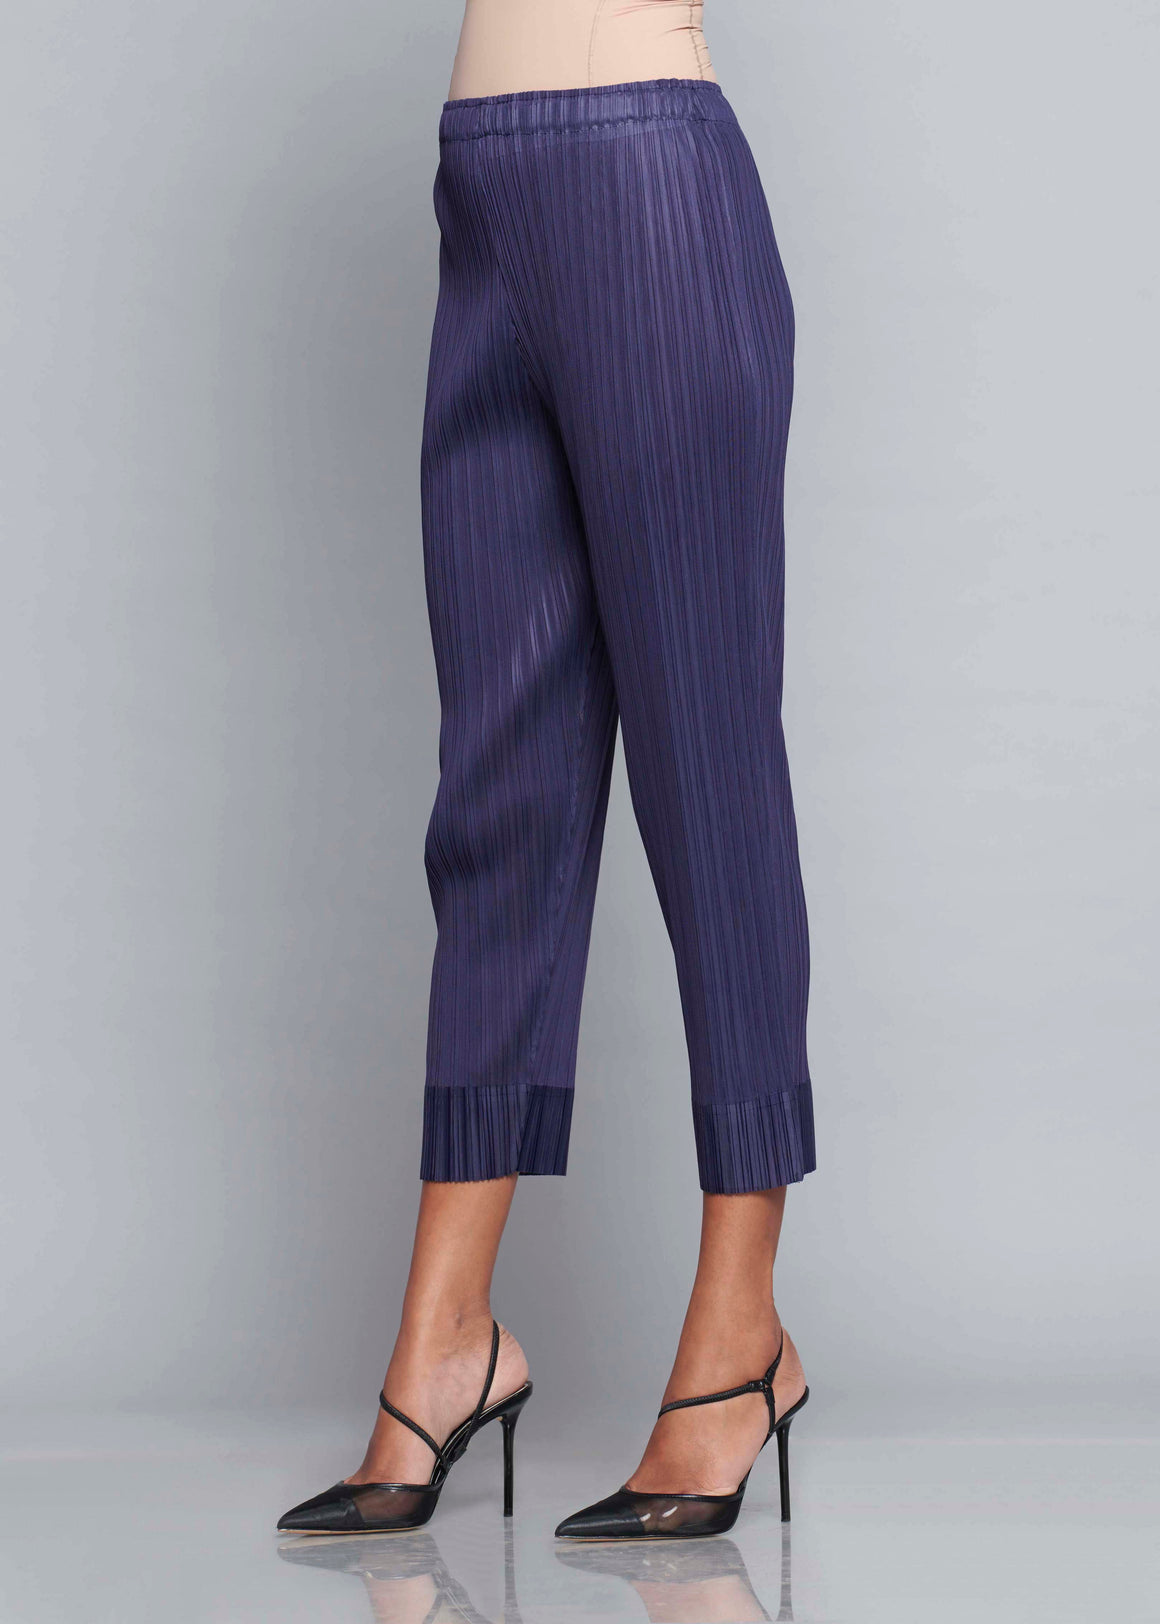 Pleated Slim Pants - Pale Navy Blue